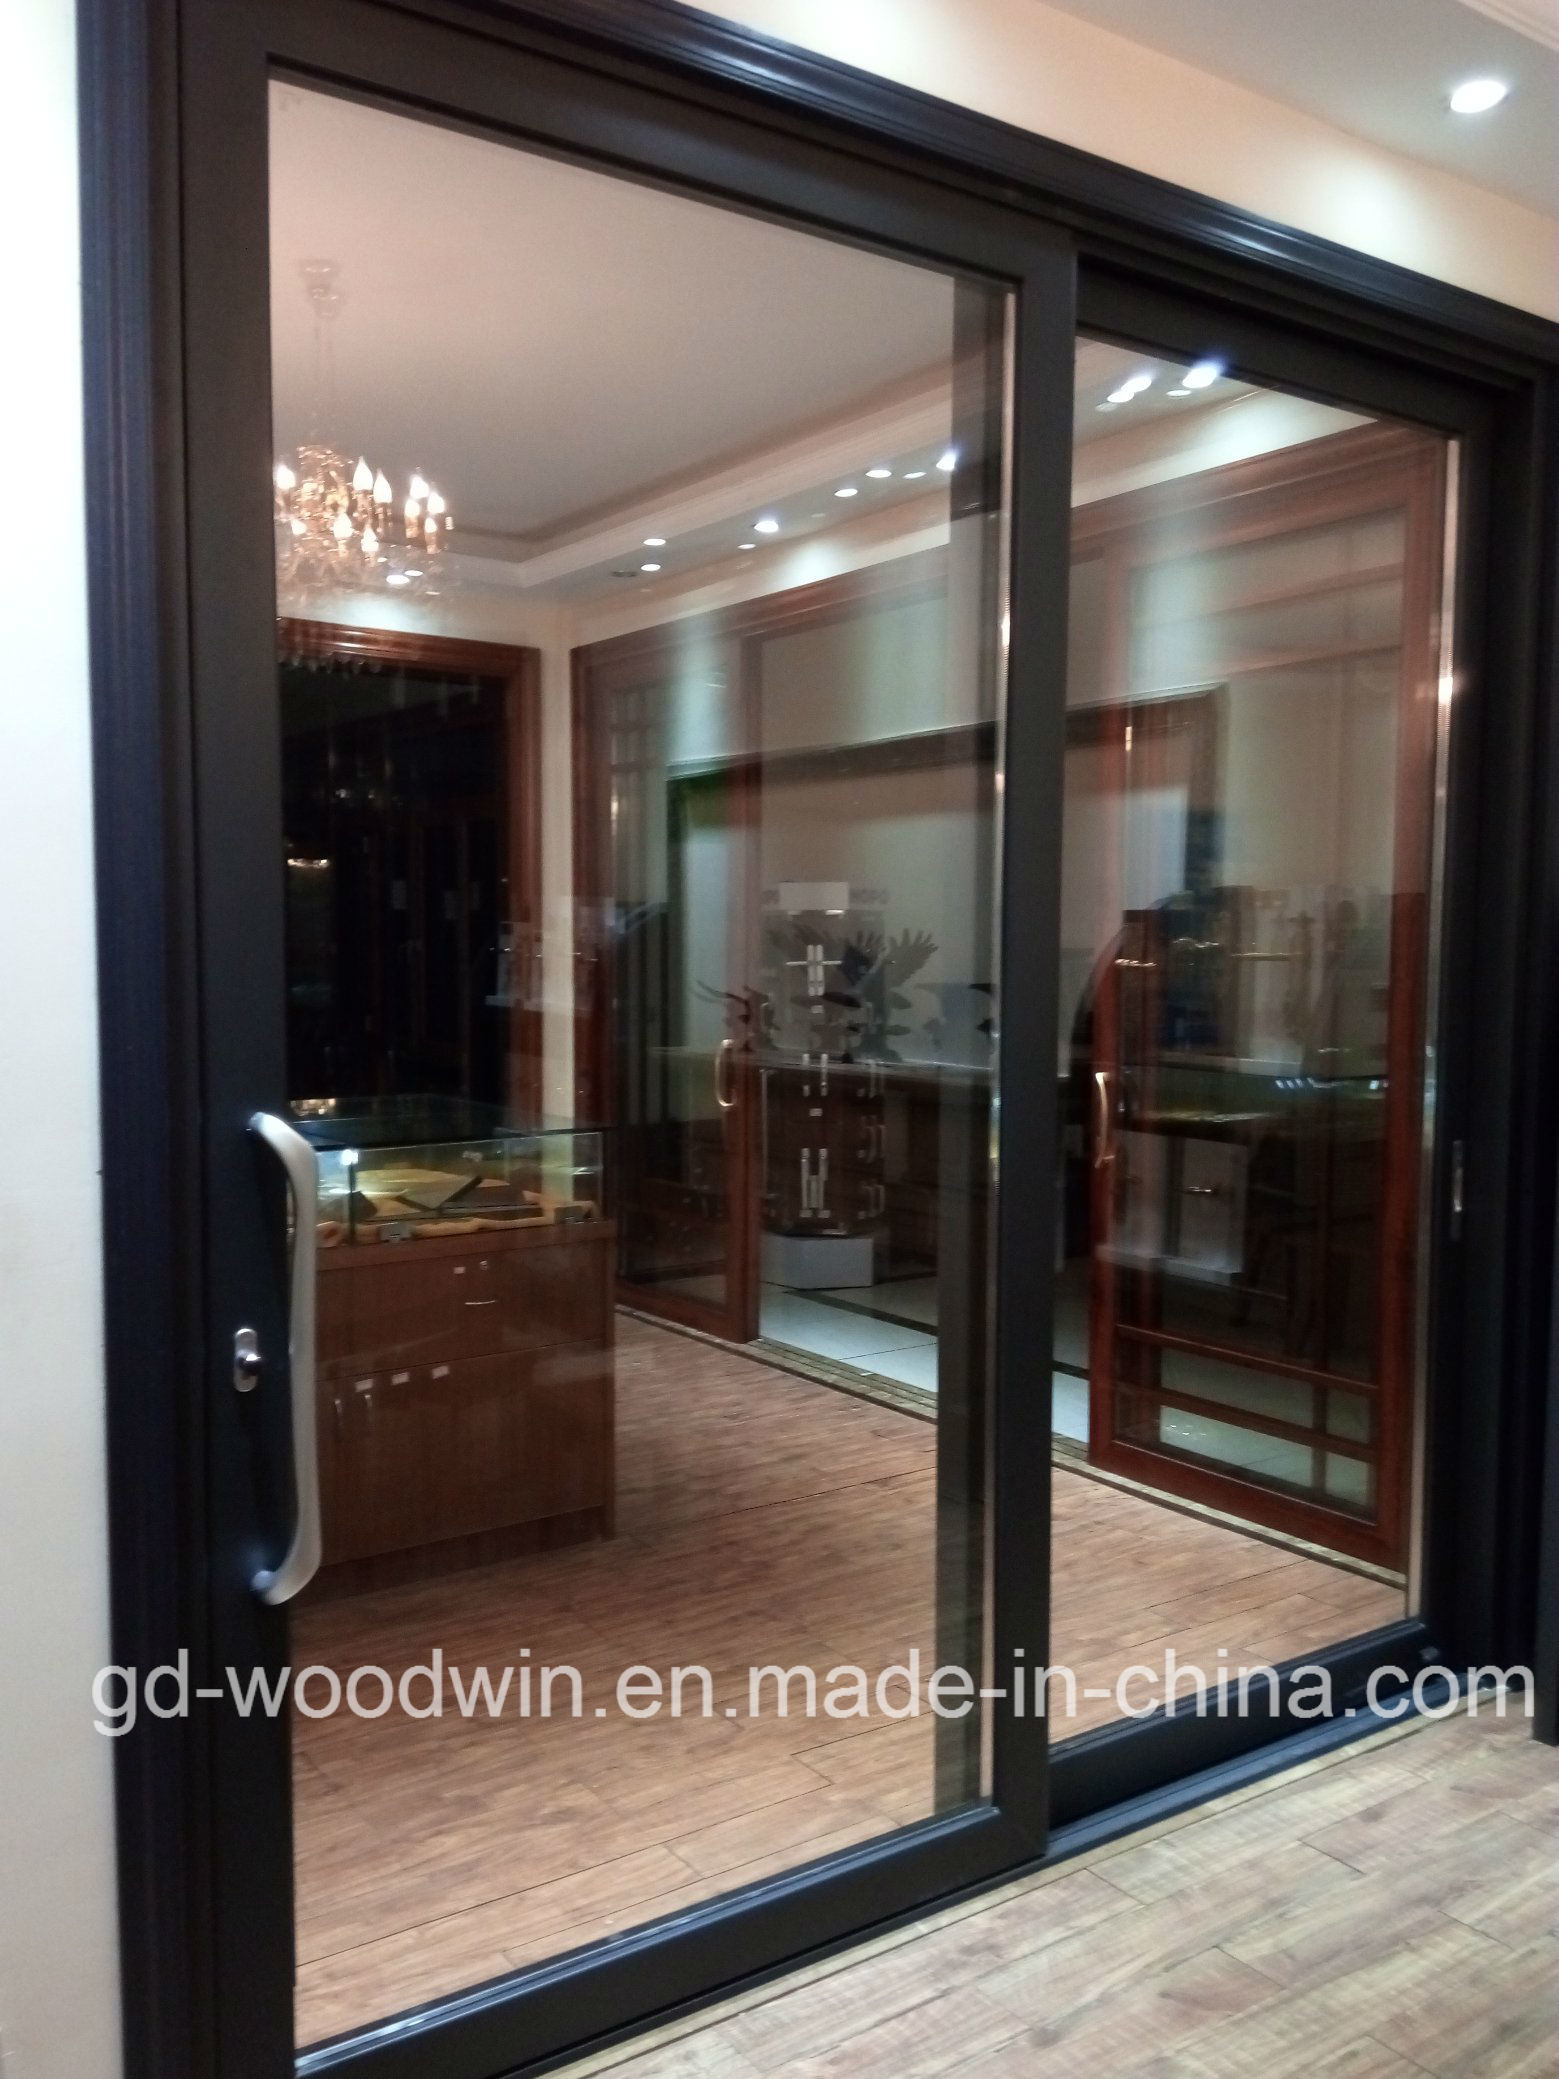 China Guangdong Woodwin Hot Seller Double Tempered Glass Aluminium Sliding Door (YS-120A) - China Aluminum Door Sliding Door & China Guangdong Woodwin Hot Seller Double Tempered Glass Aluminium ...